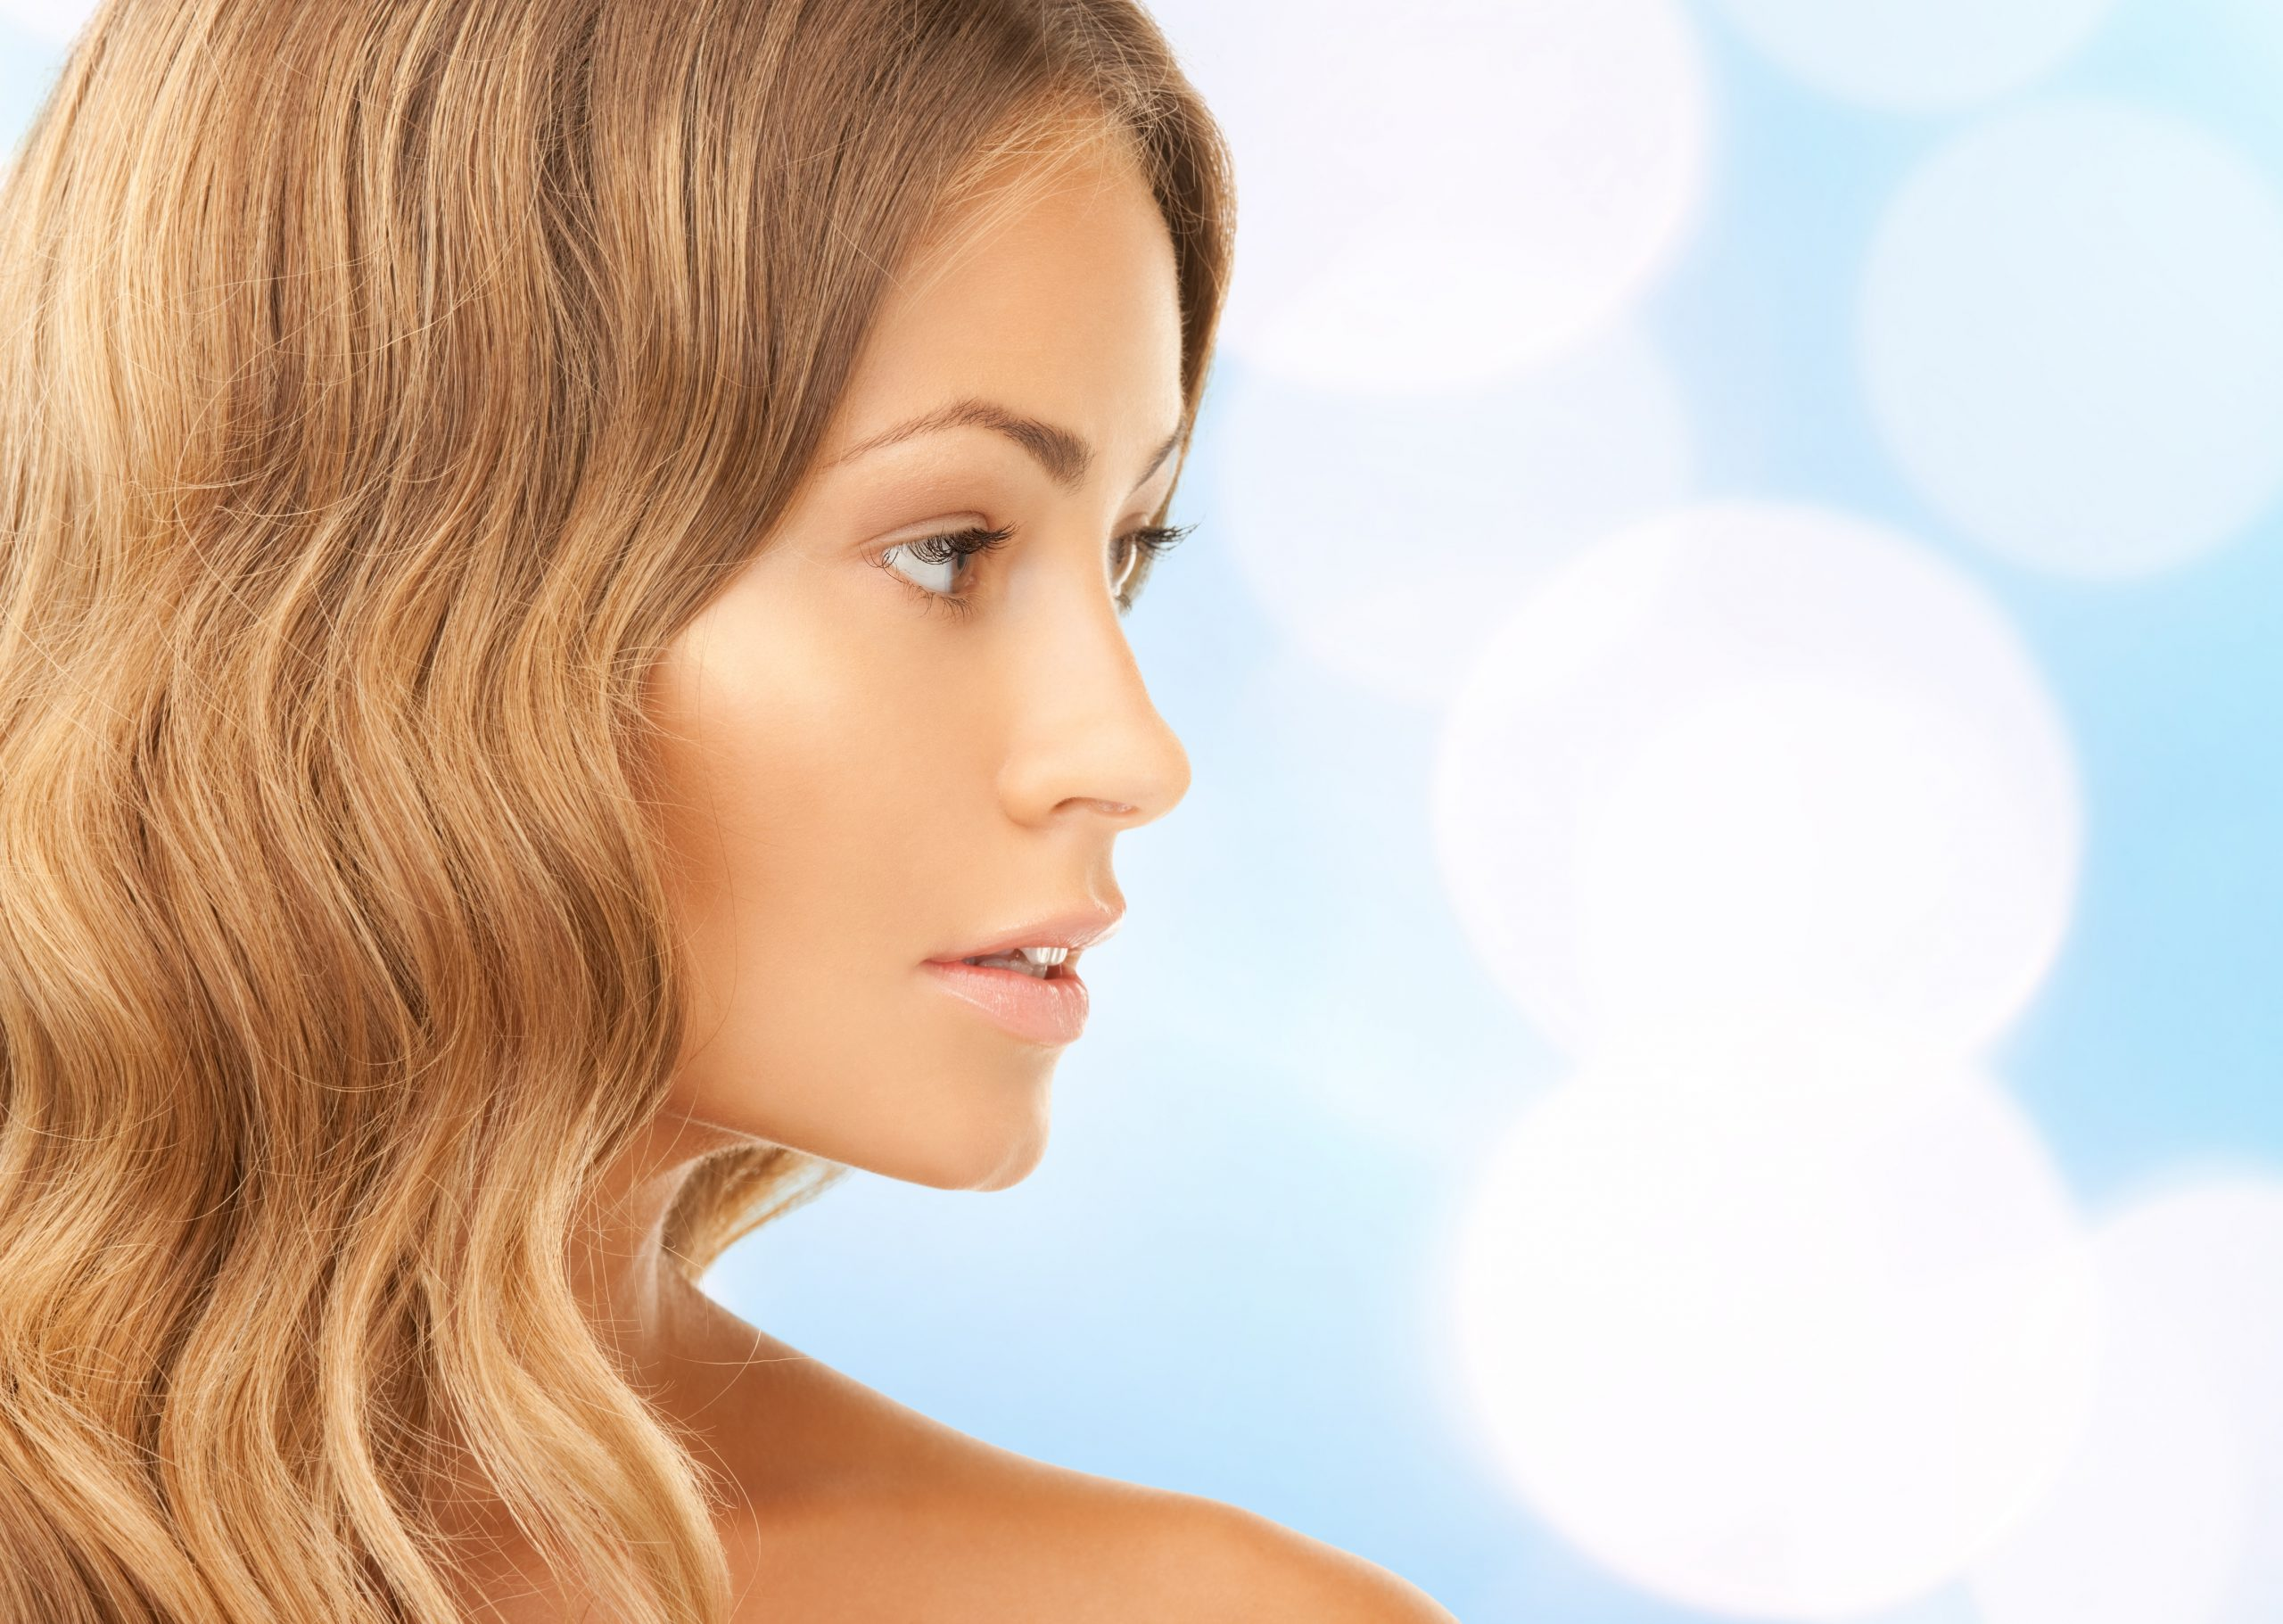 How a Rhinoplasty Procedure Can Improve Your Breathing Ability